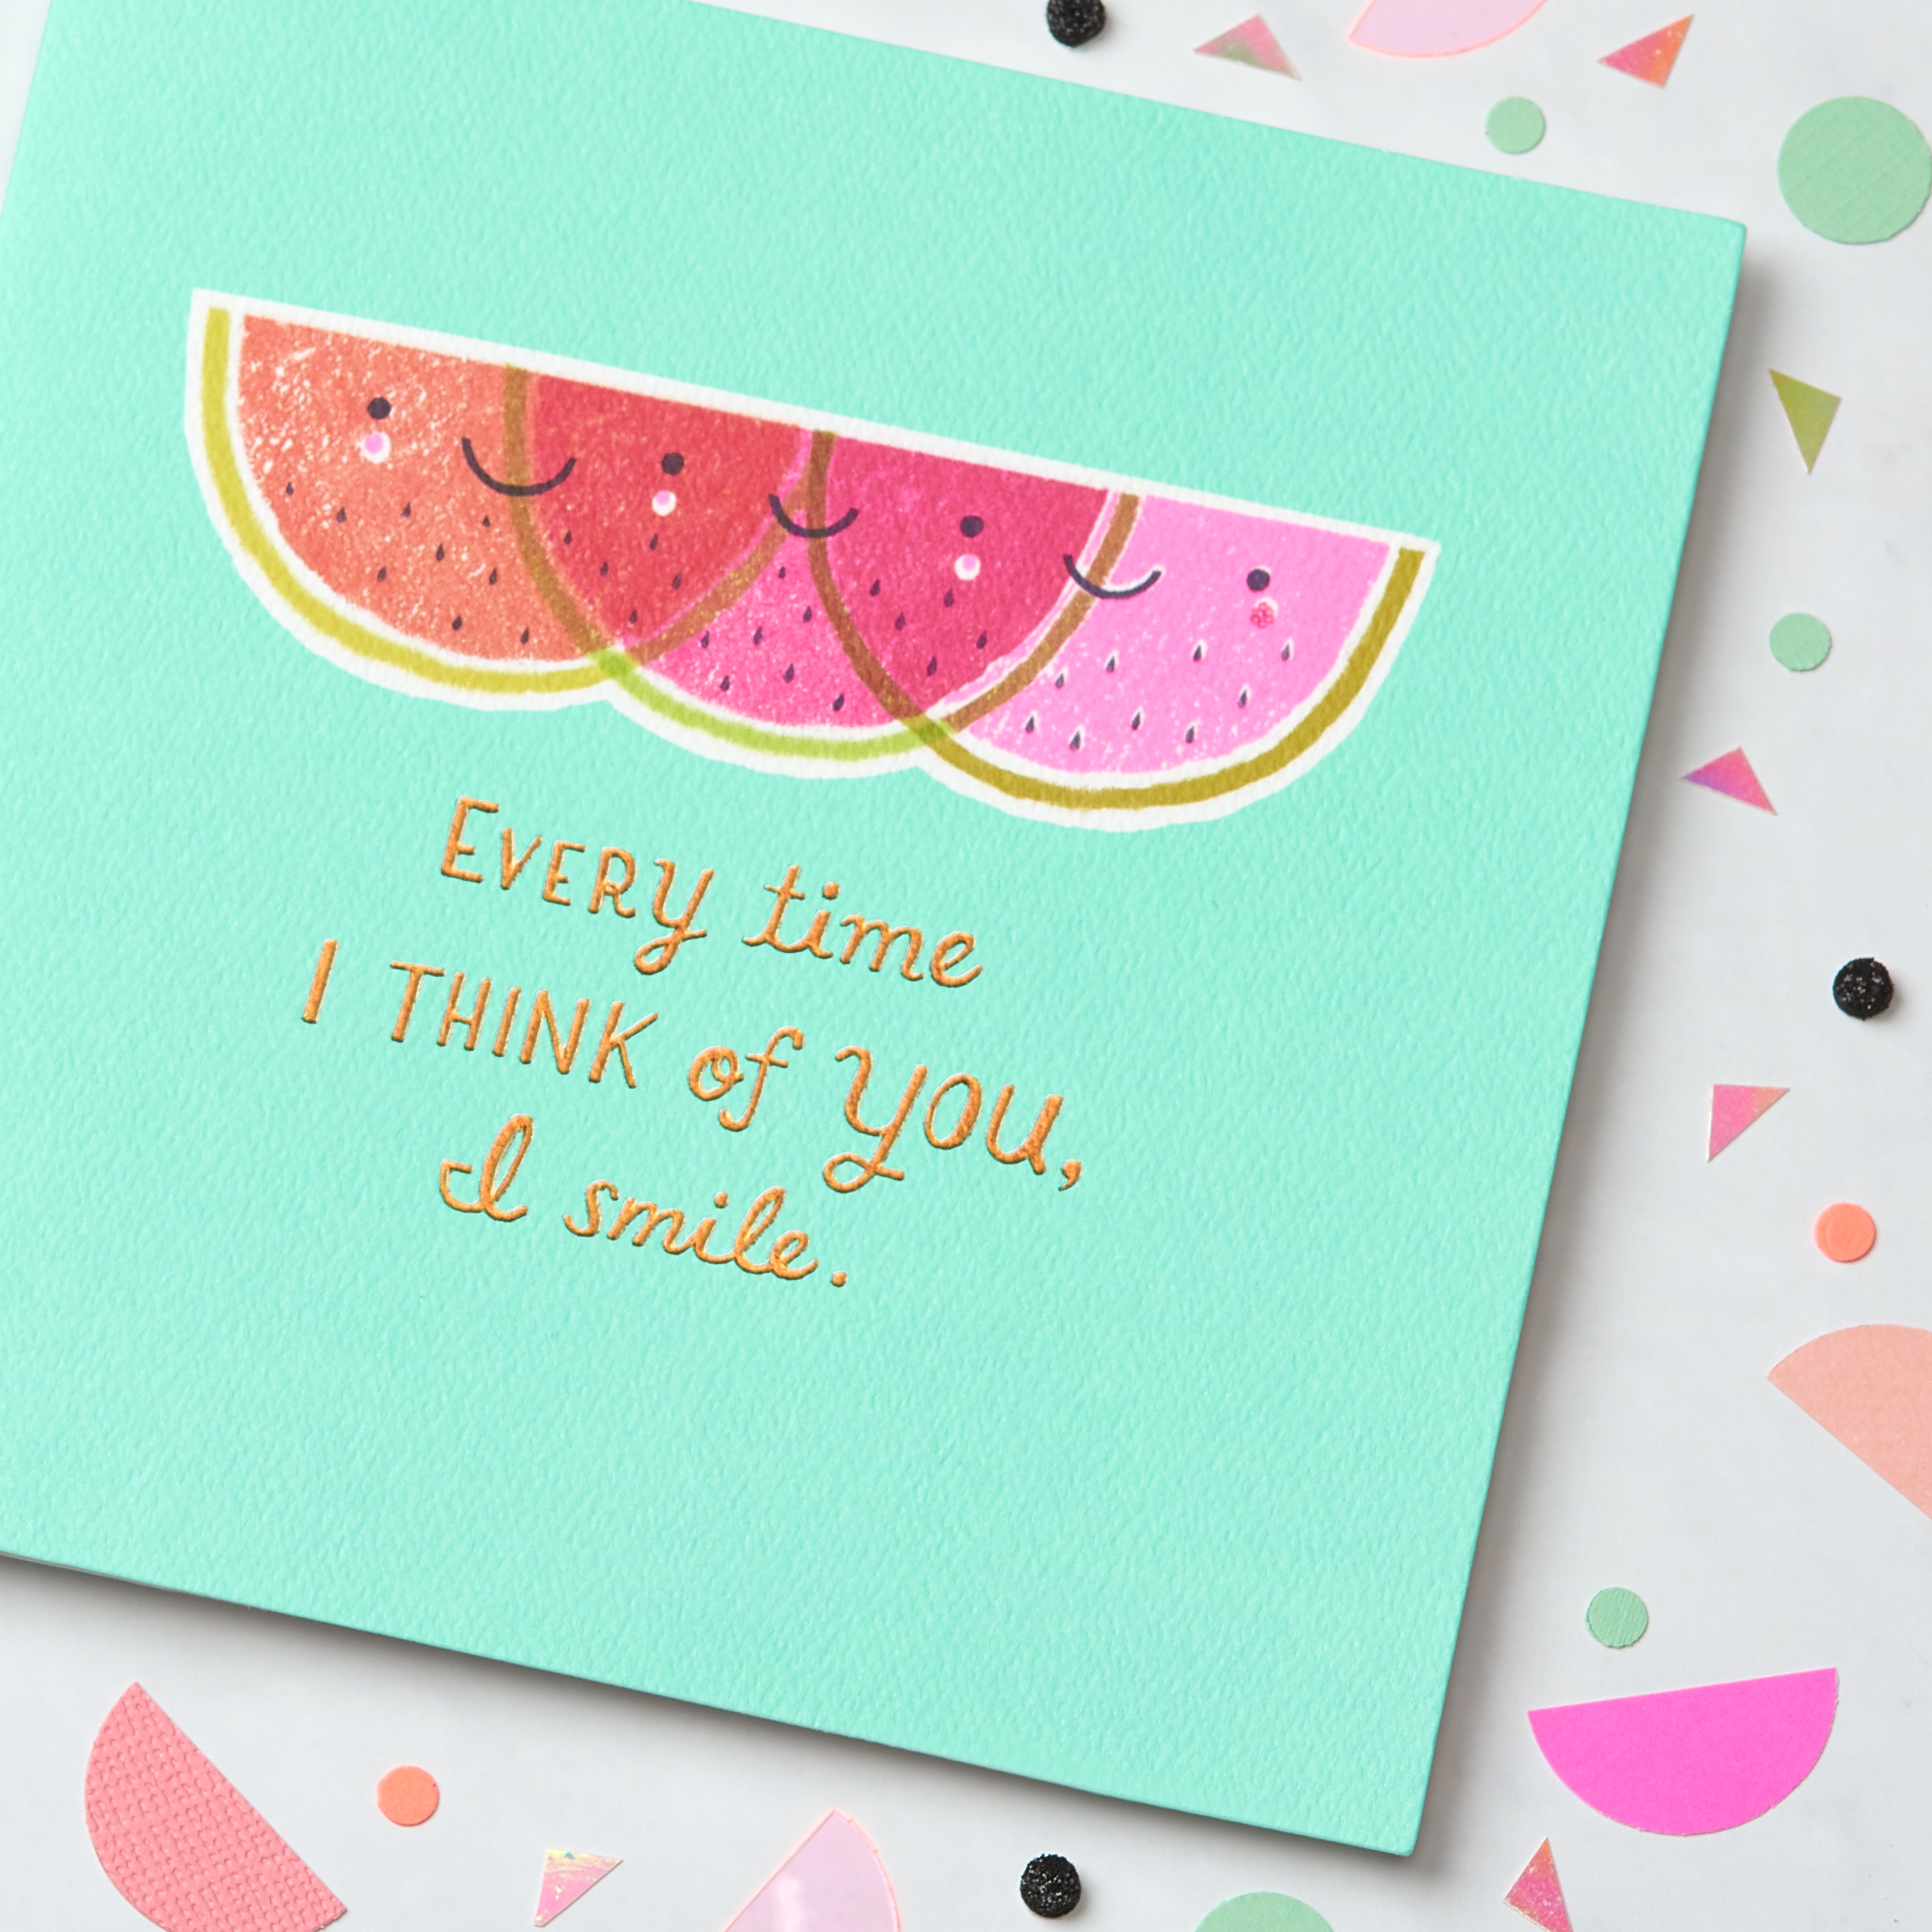 Watermelon Greeting Card - Birthday, Thinking of You, Encouragement image